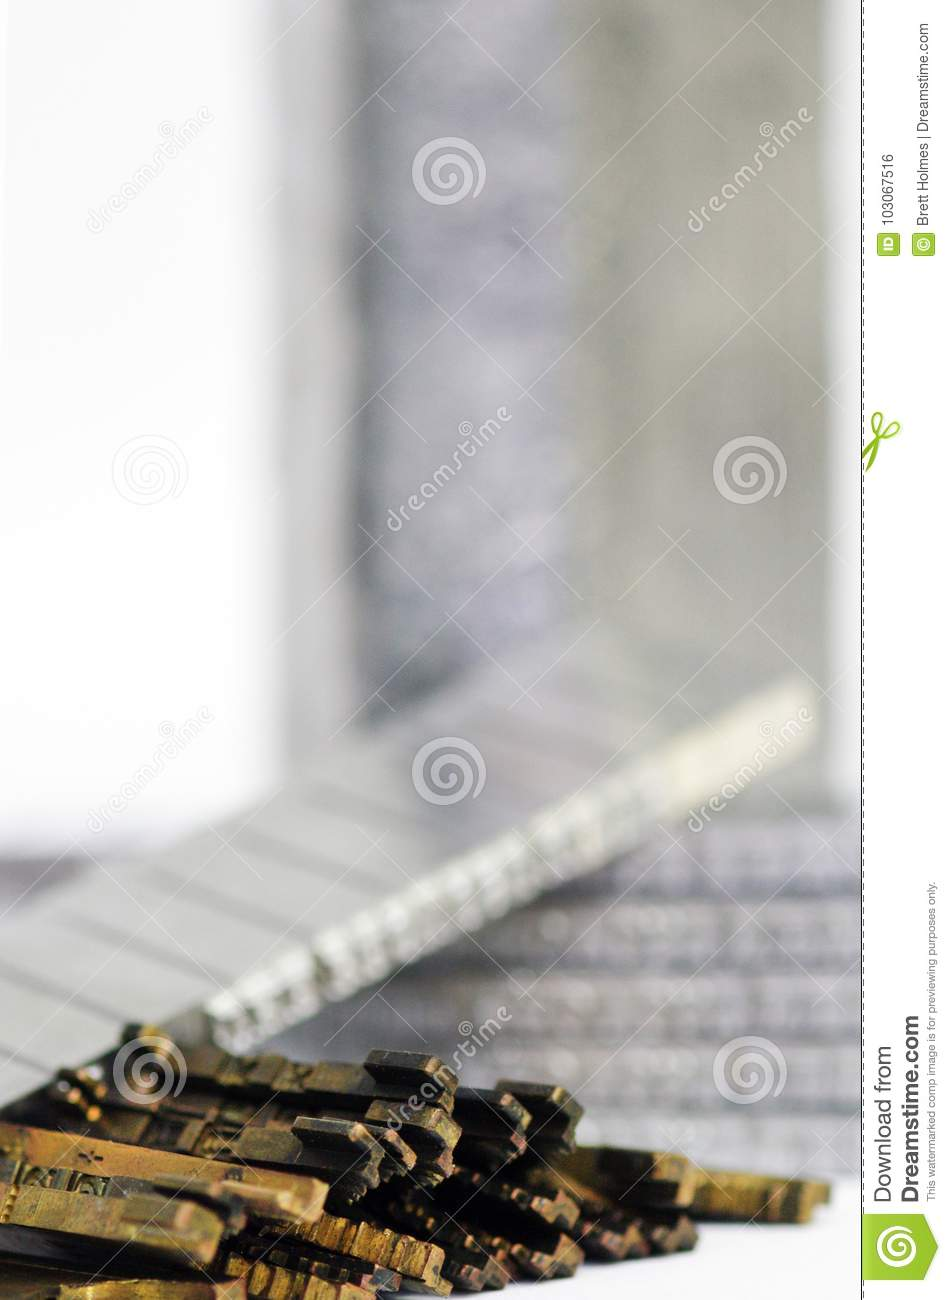 Linotype Lead Slugs And Matrices Closeup Stock Photo - Image